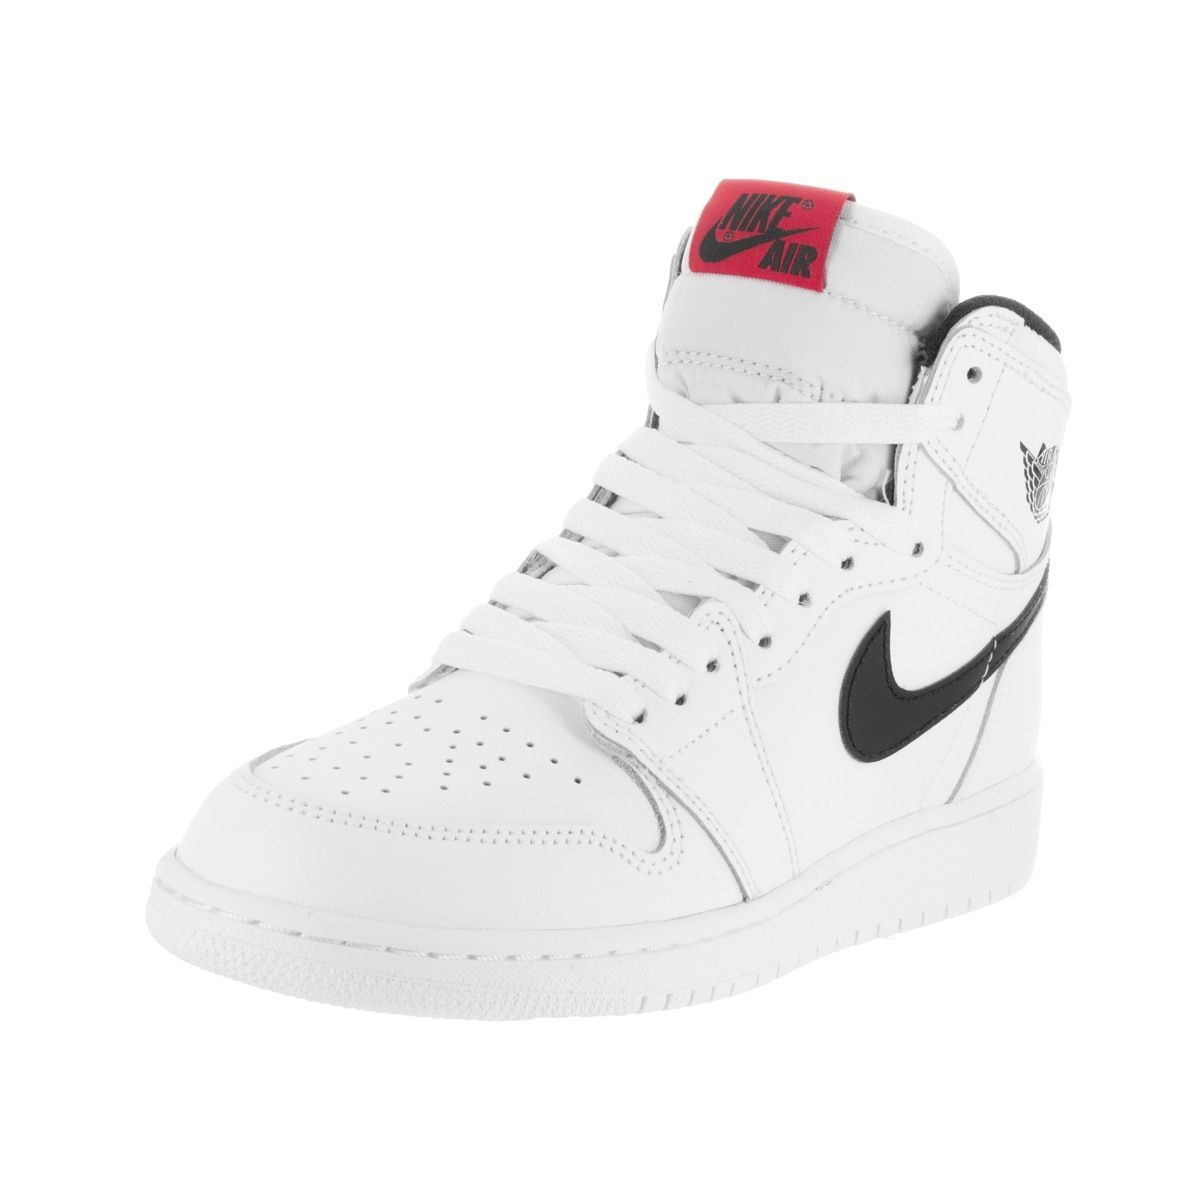 discount online store buying new Nike Jordan Kids Air Jordan 1 Retro High White Leather ...